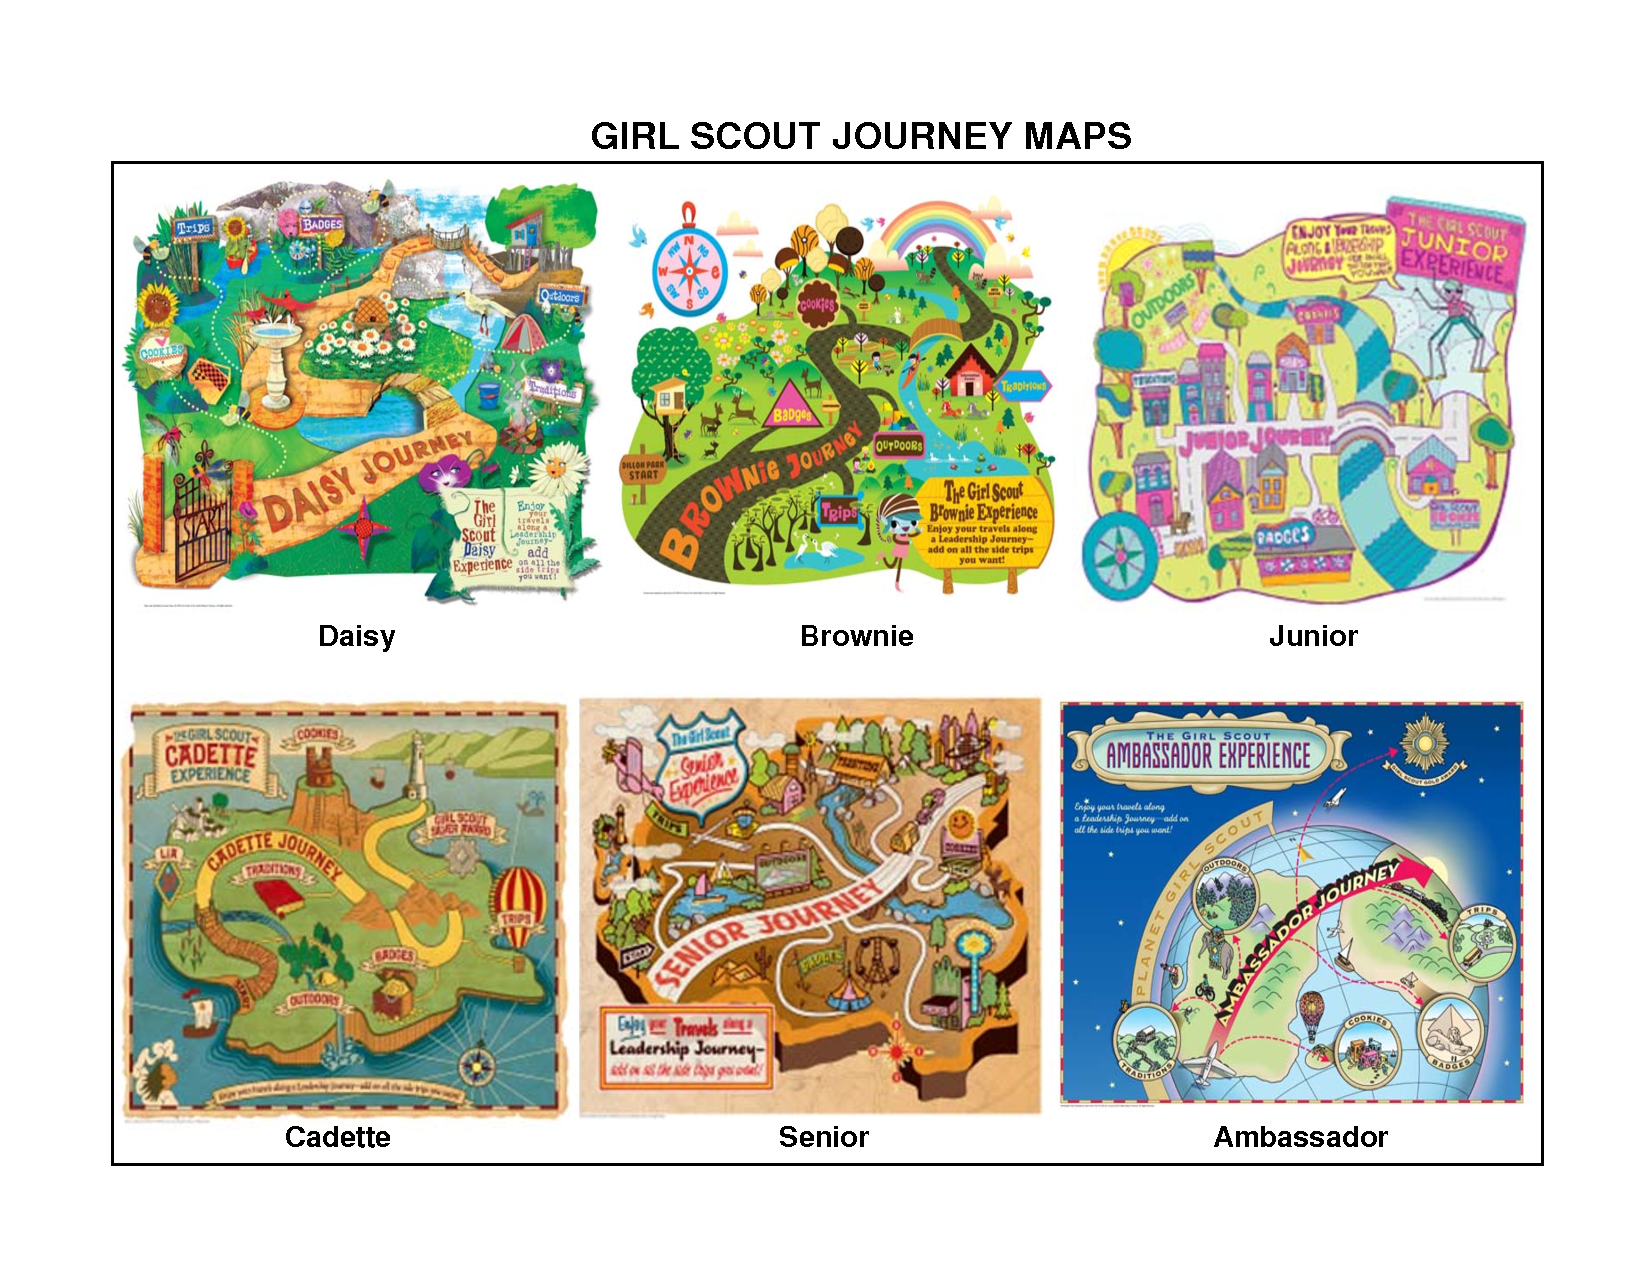 Story Telling Maps From The Girl Scouts Programs